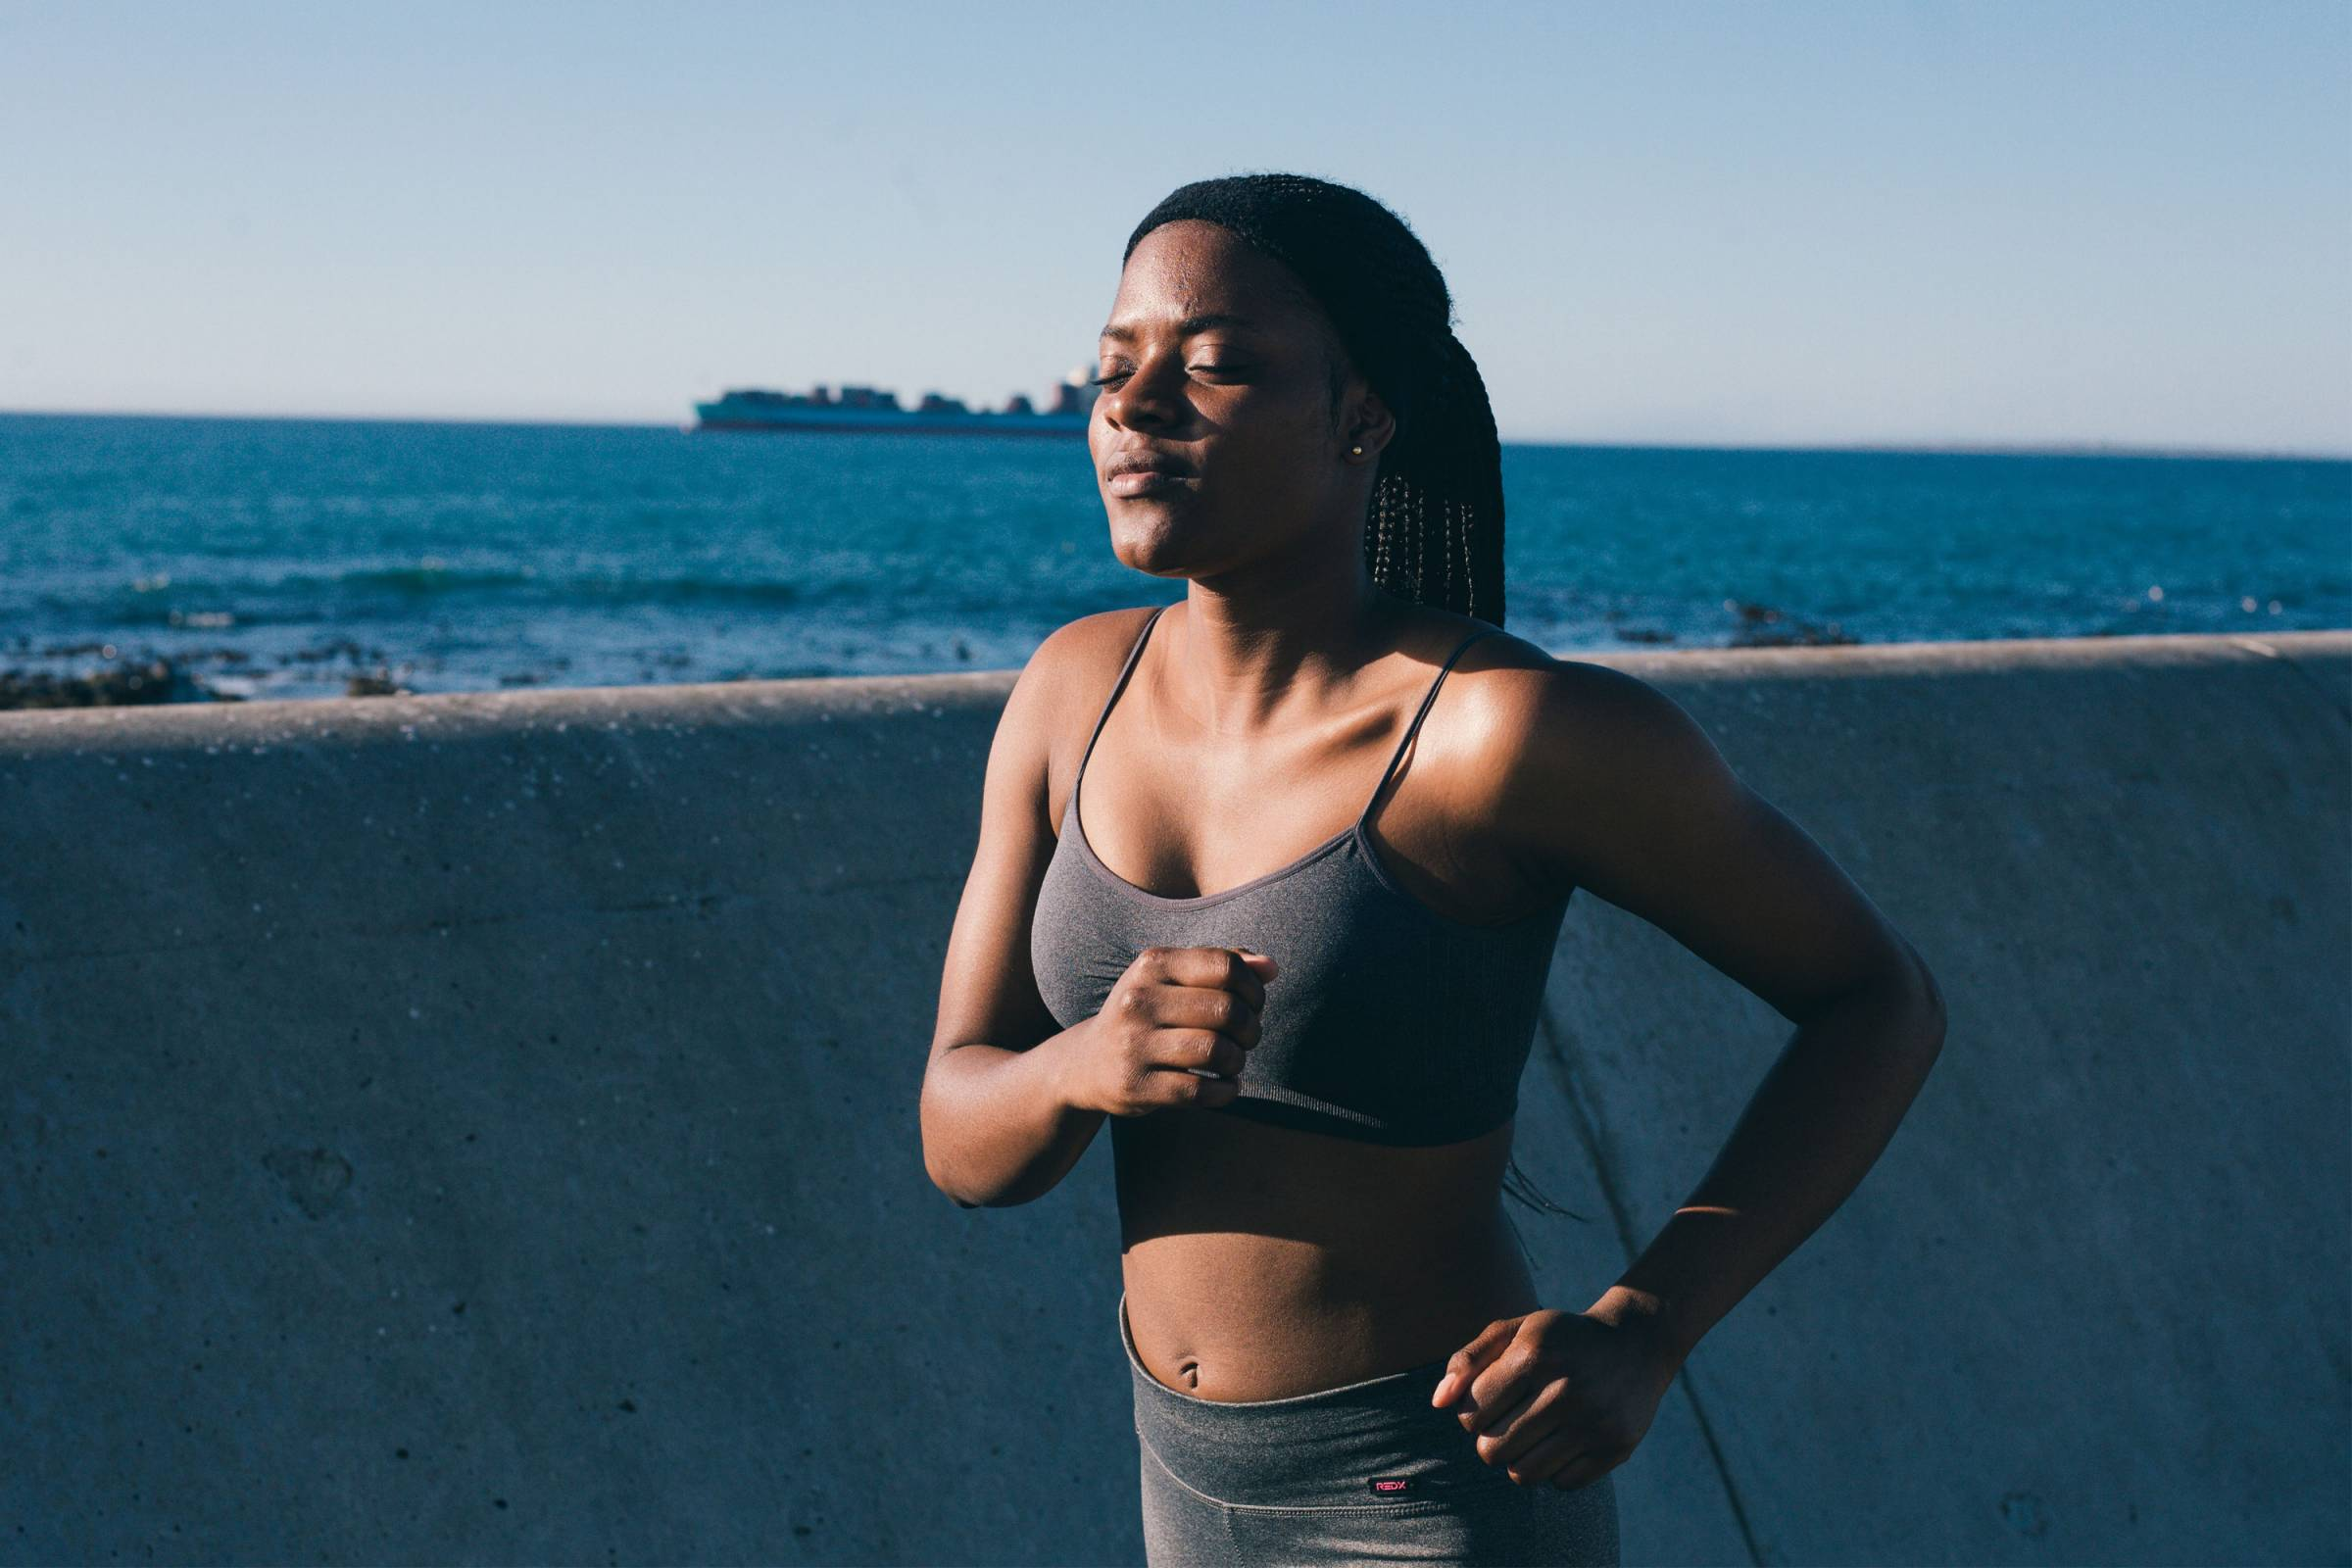 Black woman running with eyes closed along coast in sports bra and tights